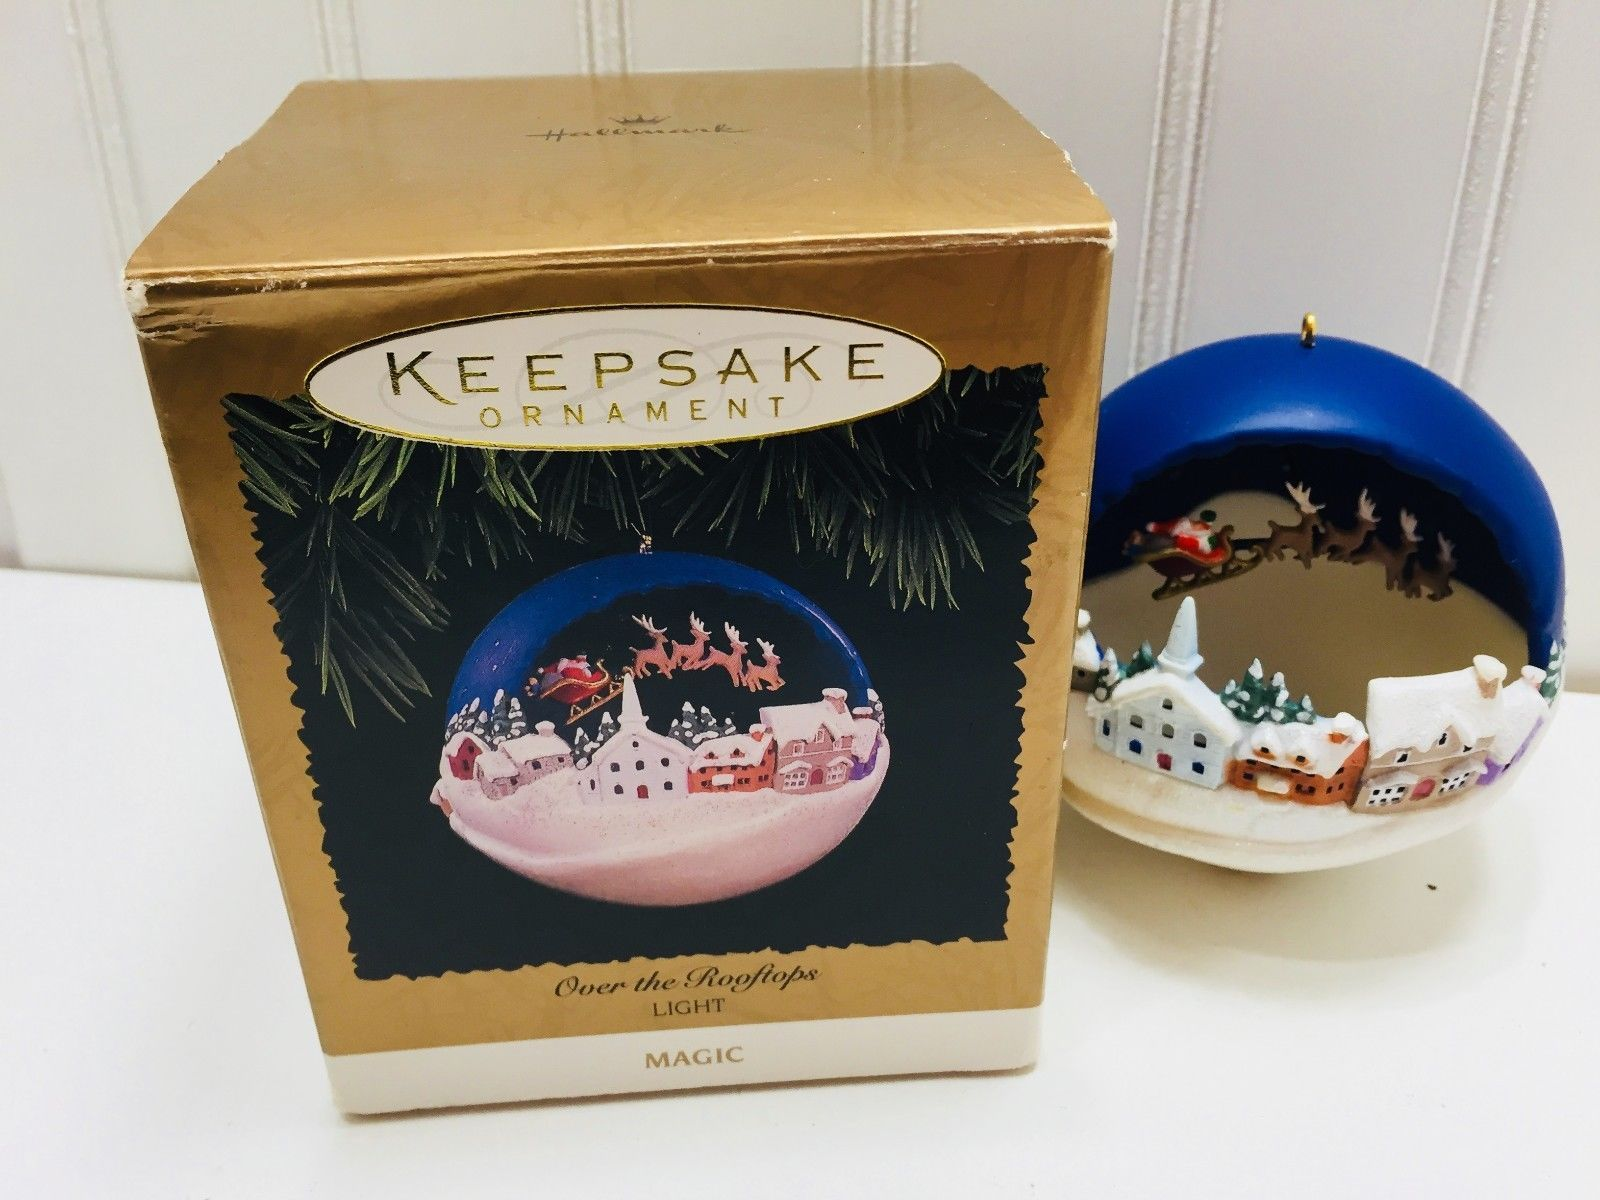 Primary image for 1996 Hallmark Keepsake Ornament Over the Rooftops Light Magic 22729